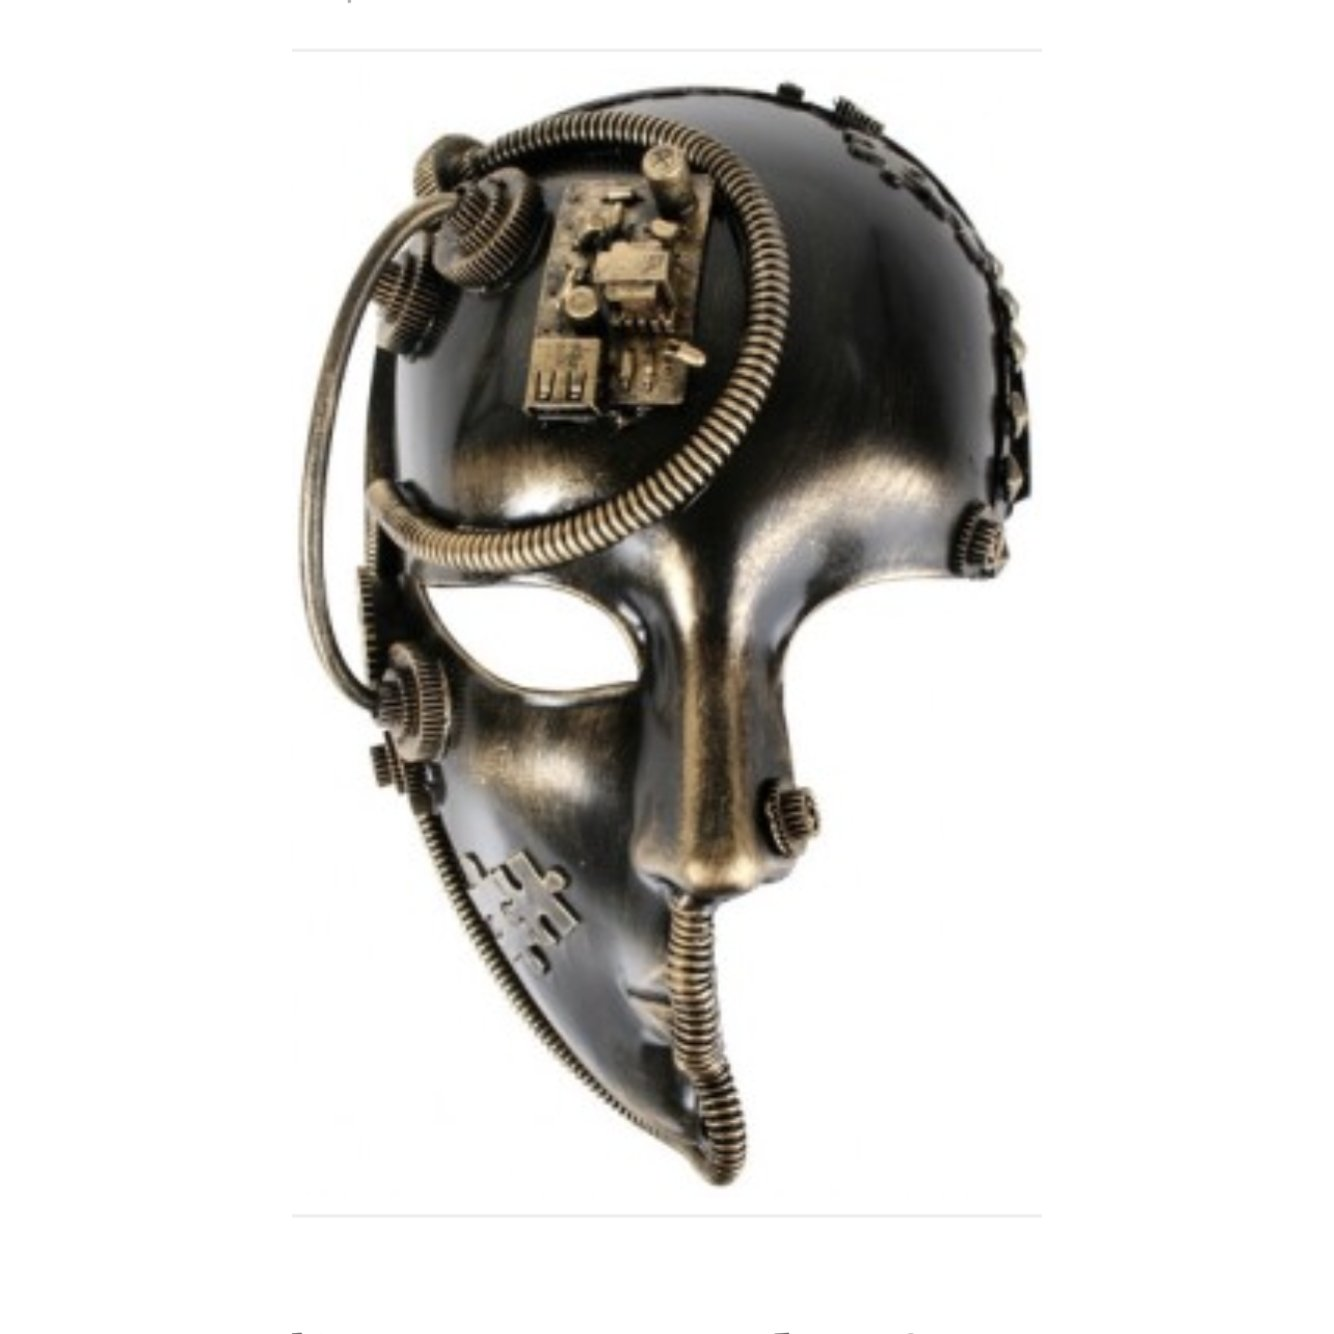 Steam Punk Masquerade Mask - The Costume Company | Fancy Dress Costumes Hire and Purchase Brisbane and Australia